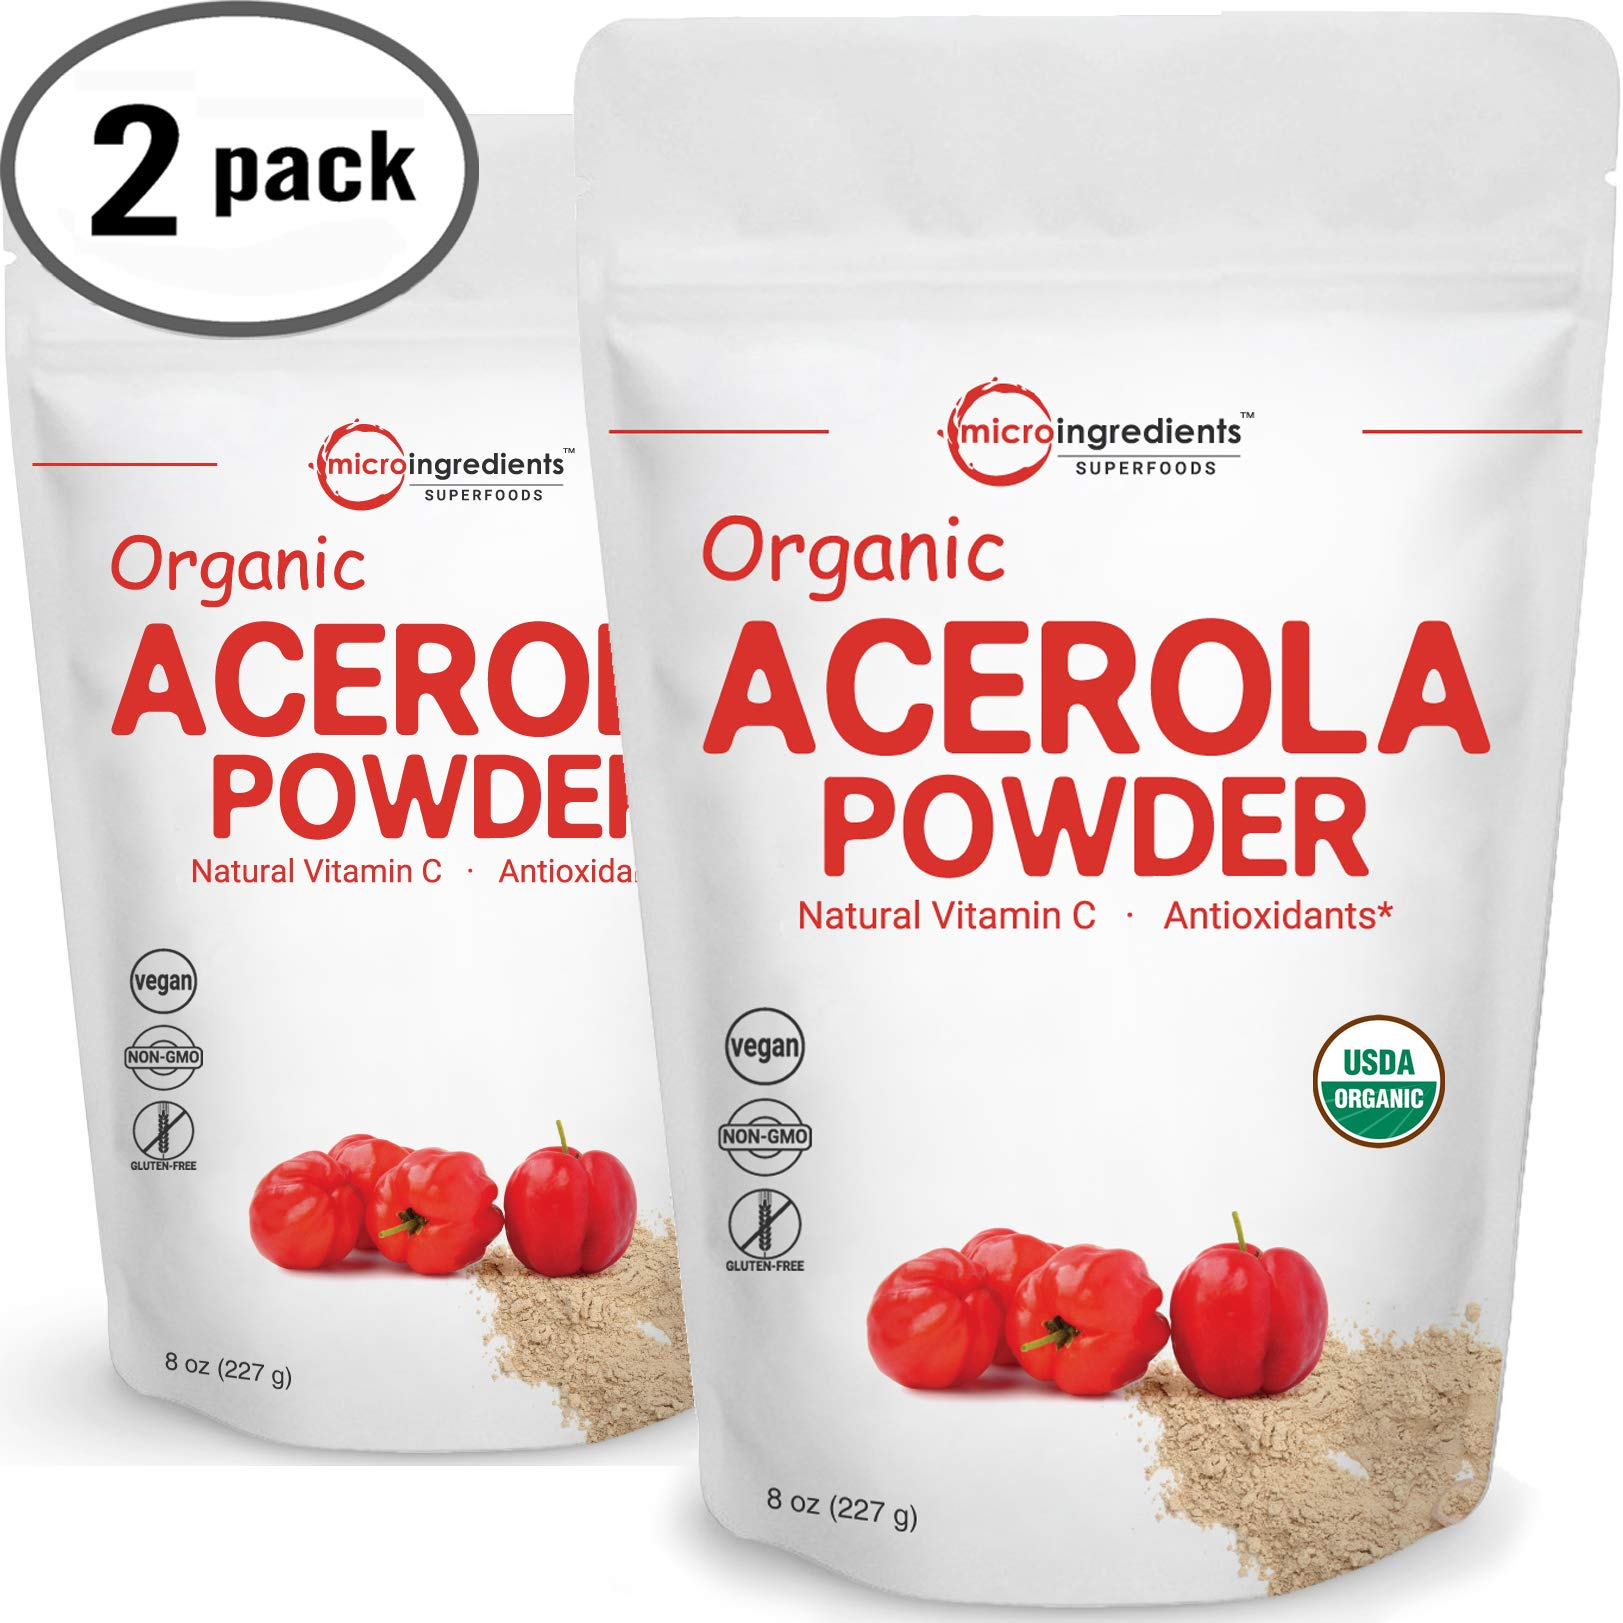 Pure USDA Organic Acerola Cherries Extract, Natural and Organic Vitamin C Powder, 8 Ounce, No GMOs and Vegan Friendly, 2 Pack